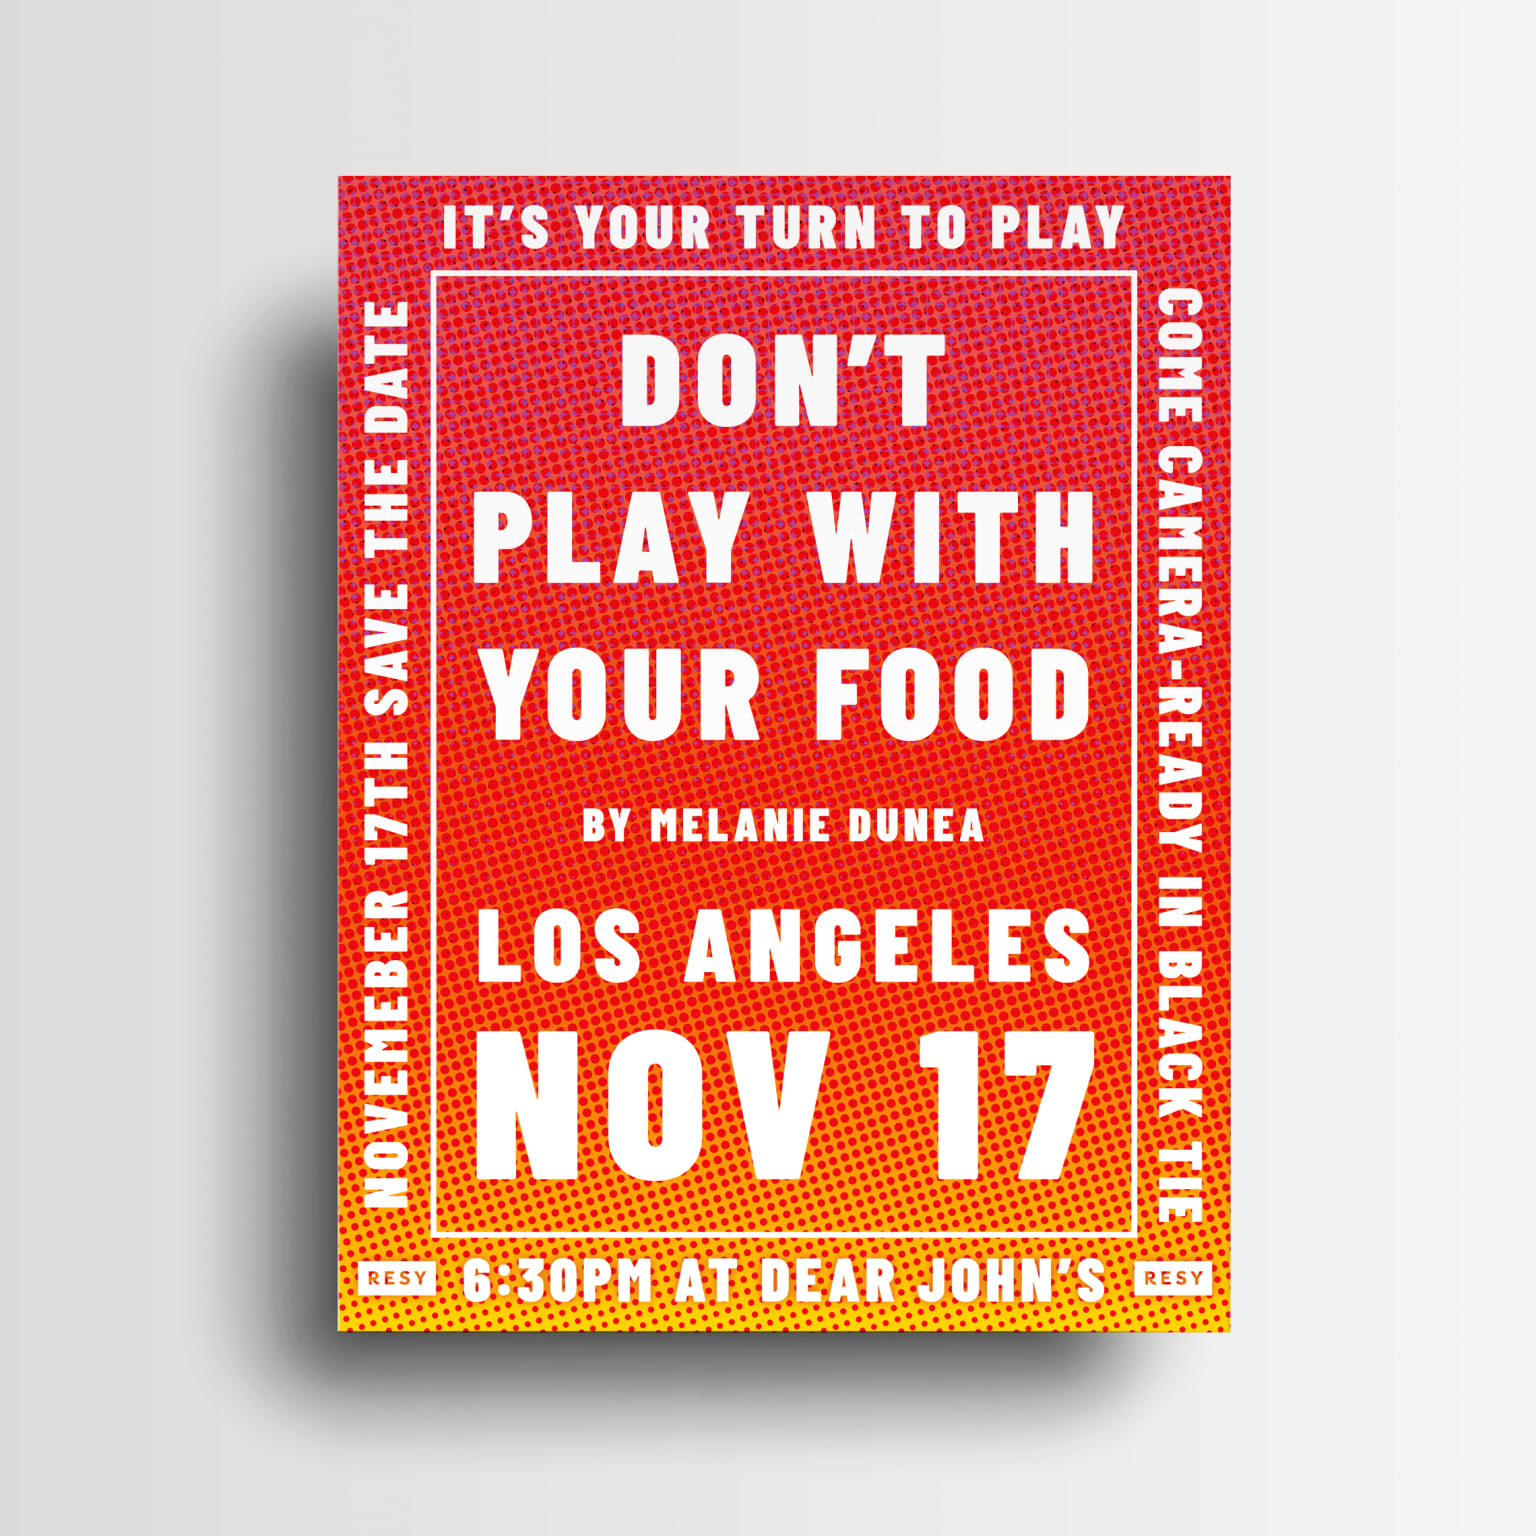 Don't Play With Your Food - branding and exhibition design